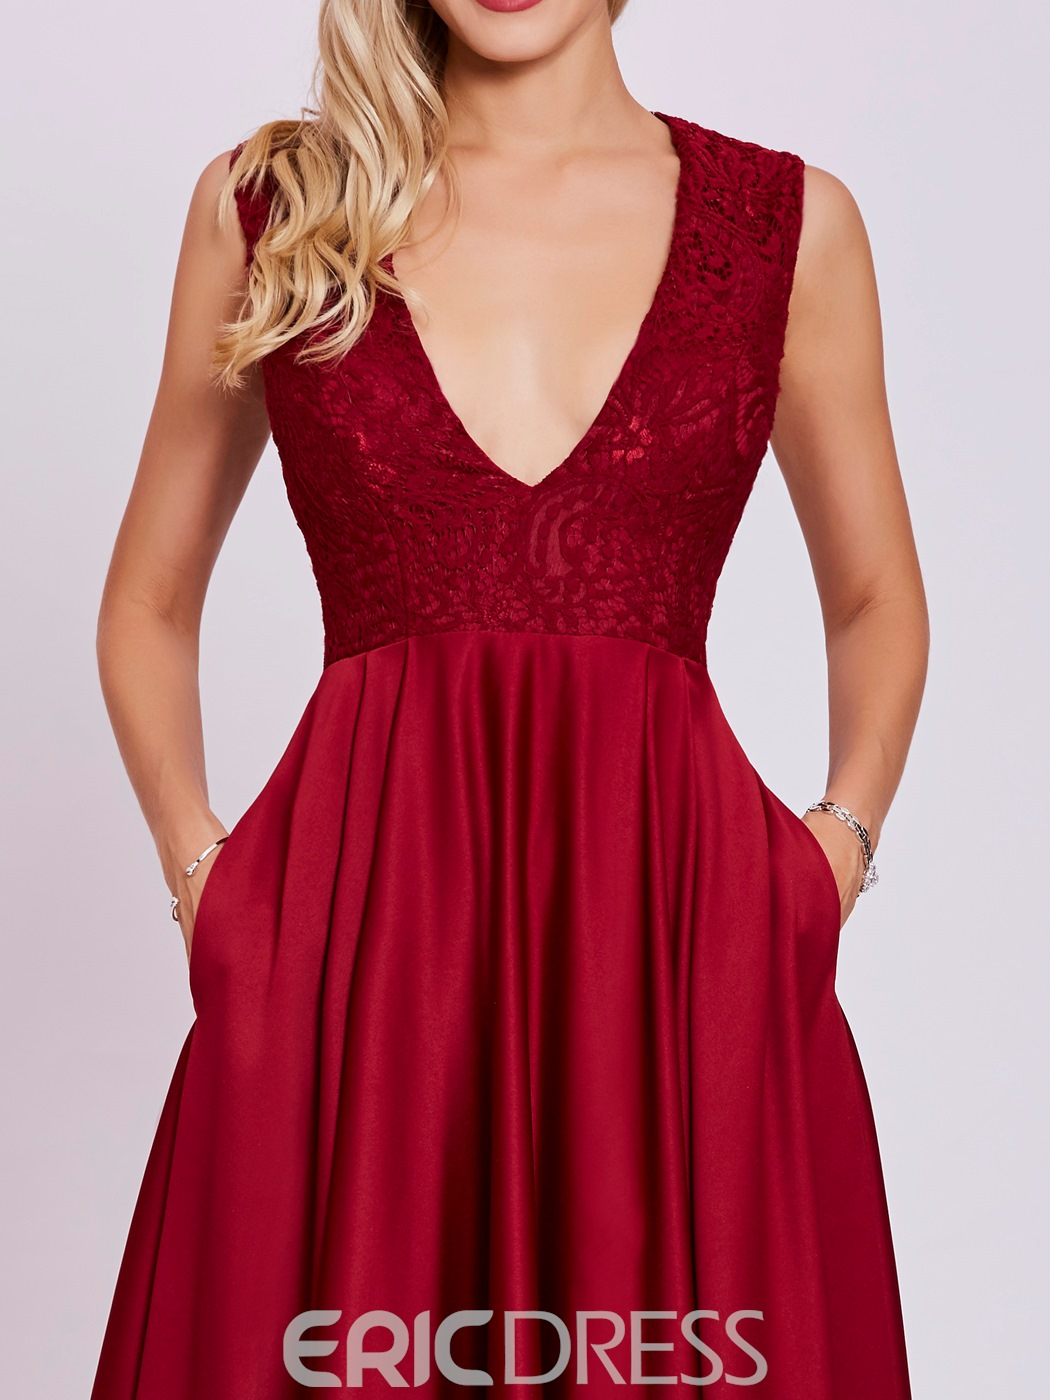 Ericdress Sexy V Neck Lace A Line Evening Dress